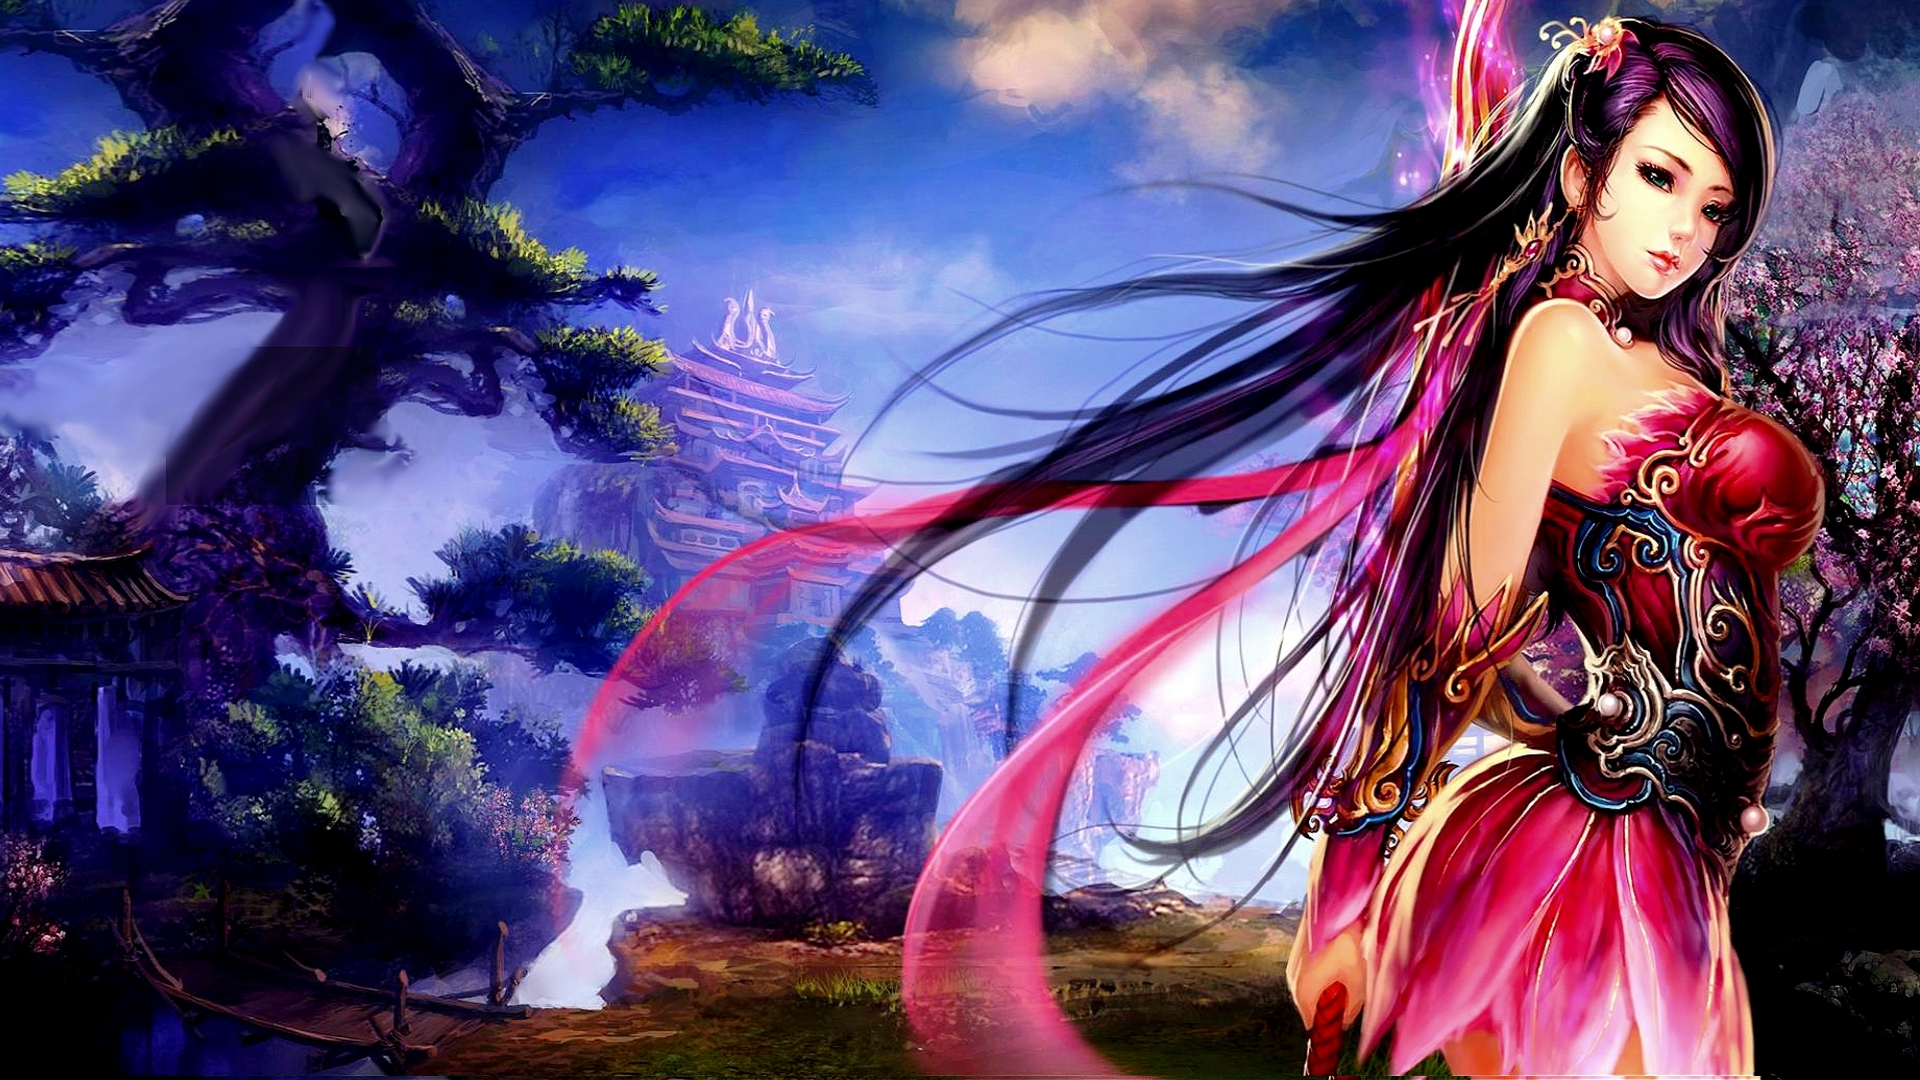 Fantasy girl 1920x1080 wallpaper high definition high quality fantasy girl 1920x1080 voltagebd Gallery